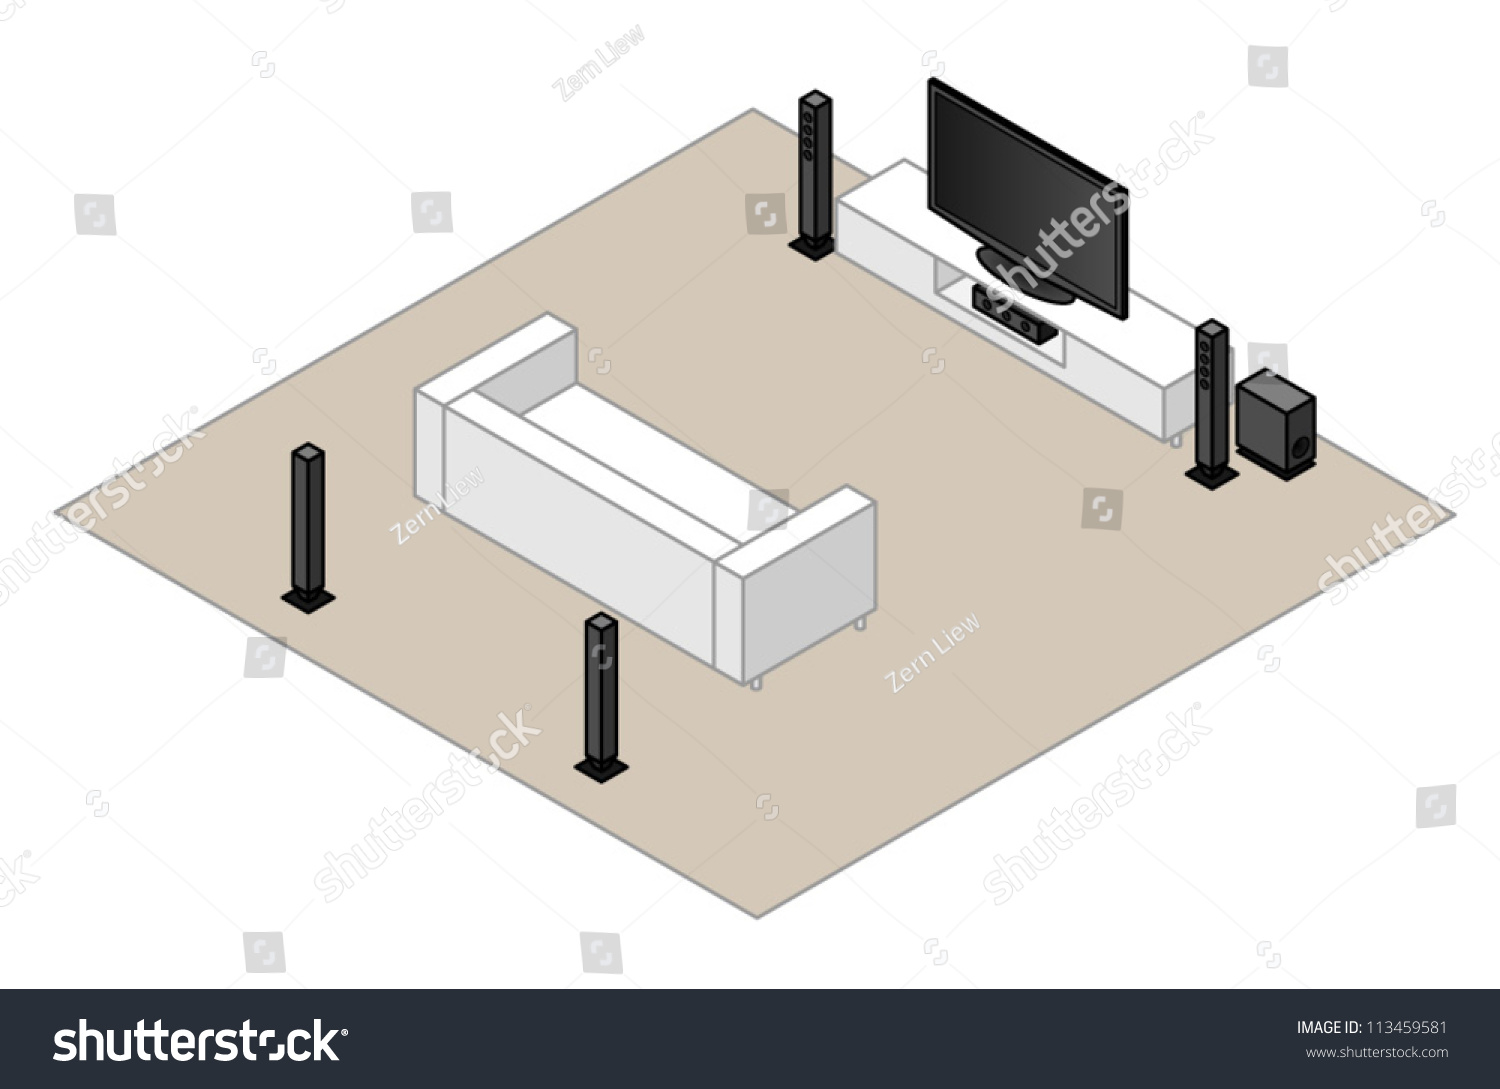 5 1 Home Theater Setup Diagram Electrical Wiring Diagrams Lifestyle 235 For Royalty Free A Theatre With 113459581 Stock Movie Sound System